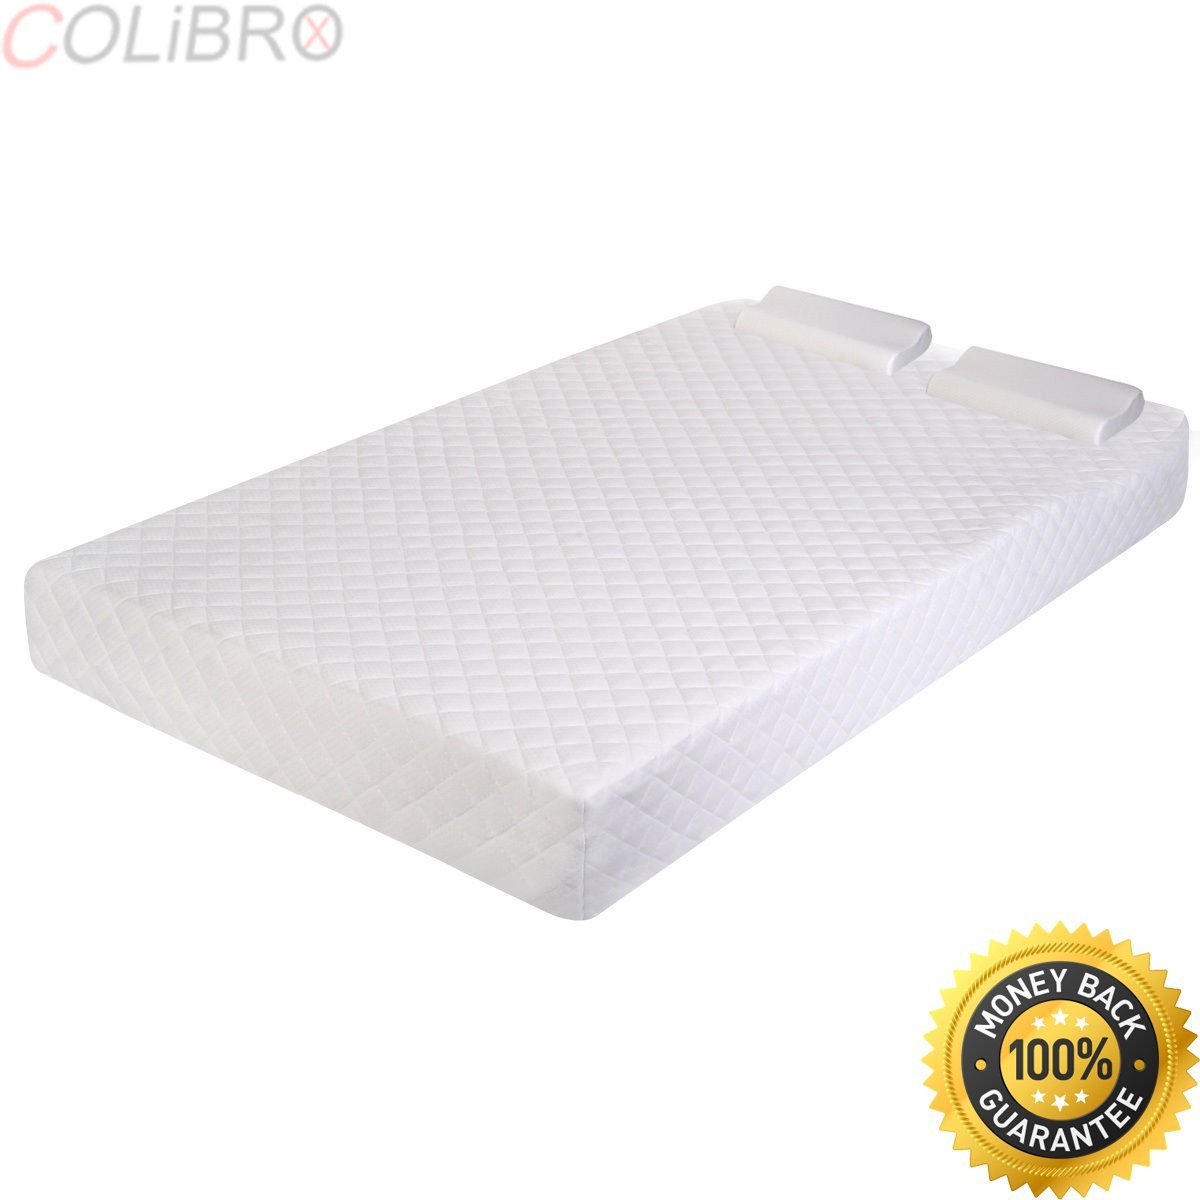 Cheap Foam Pillow Top Mattress Pad Find Foam Pillow Top Mattress